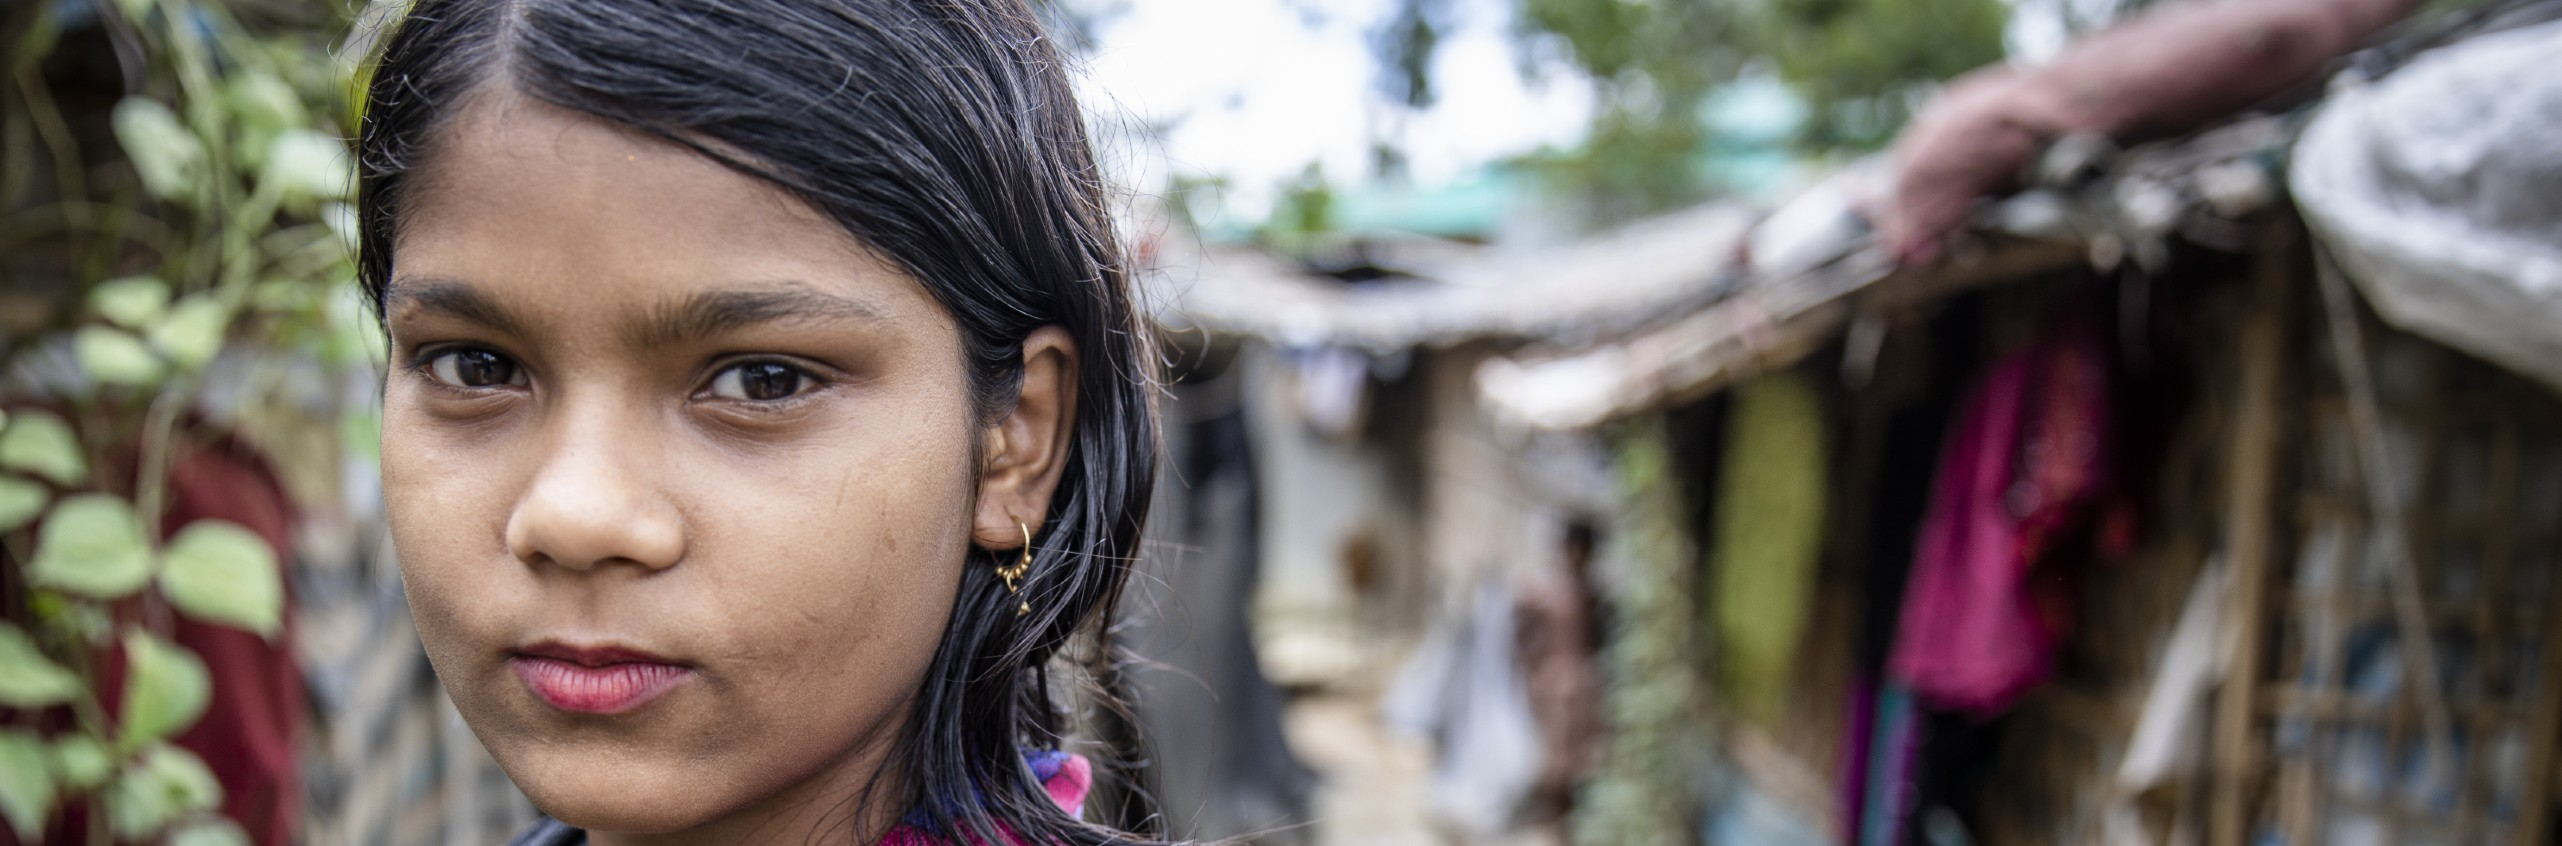 Marium*, 11, stands near her home in a camp for Rohingya Refugees in Cox's Bazar, Bangladesh.